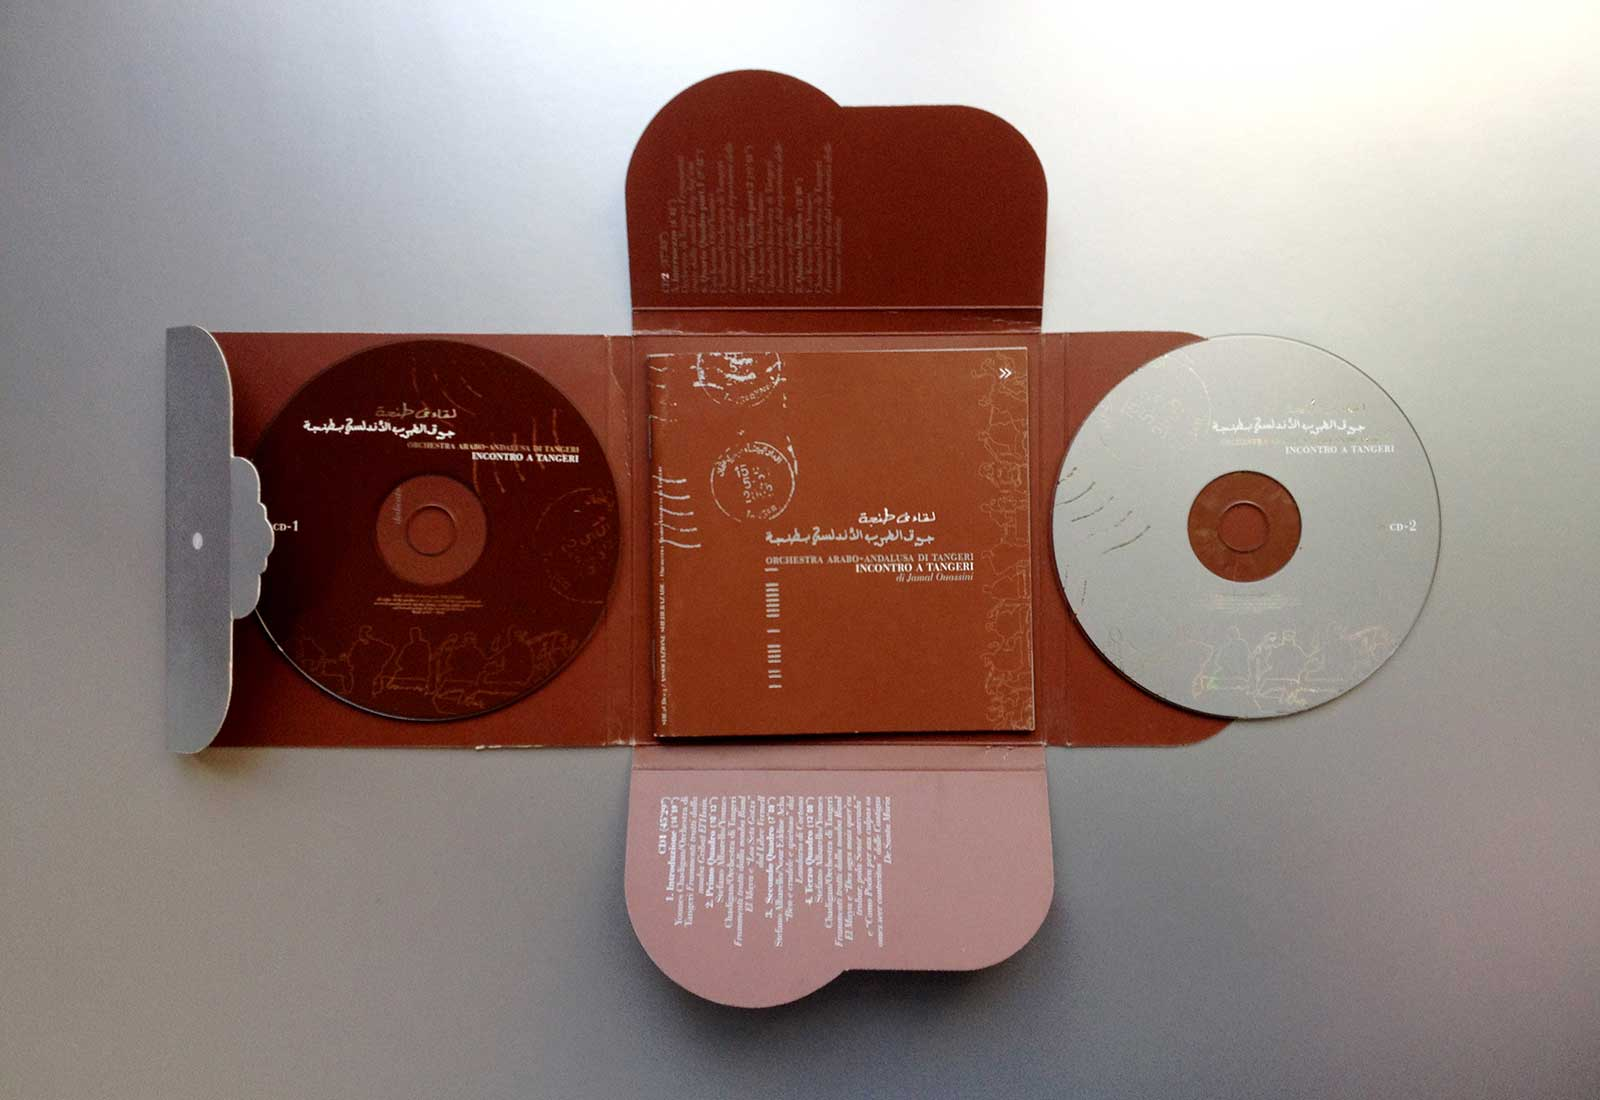 CD-INCONTRO-A-TANGERI-pack-1